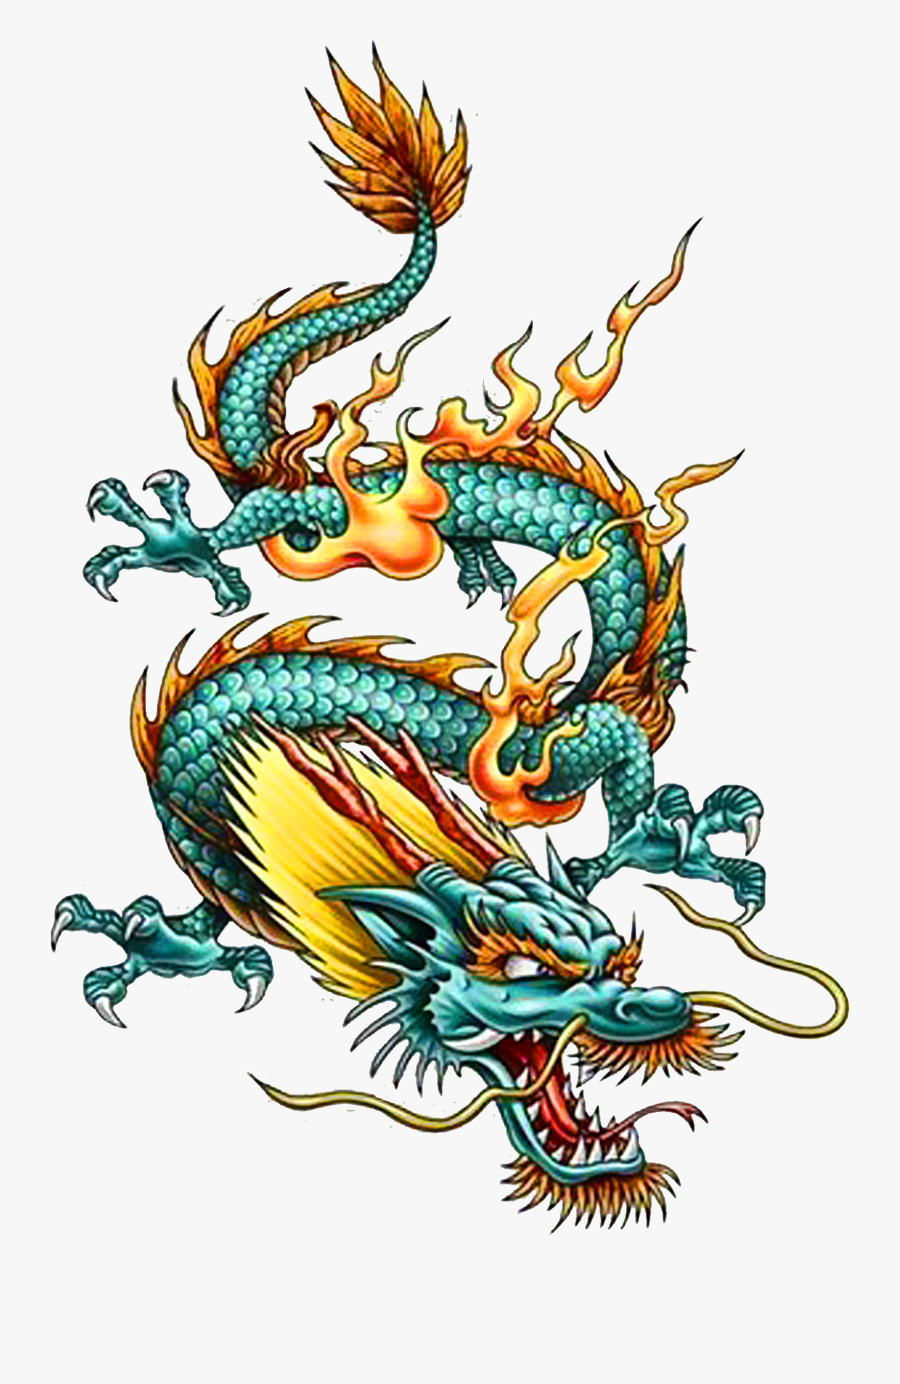 Tattoo Chinese Dragon China Legendary Creature Clipart - China Chinese Dragon Art, Transparent Clipart